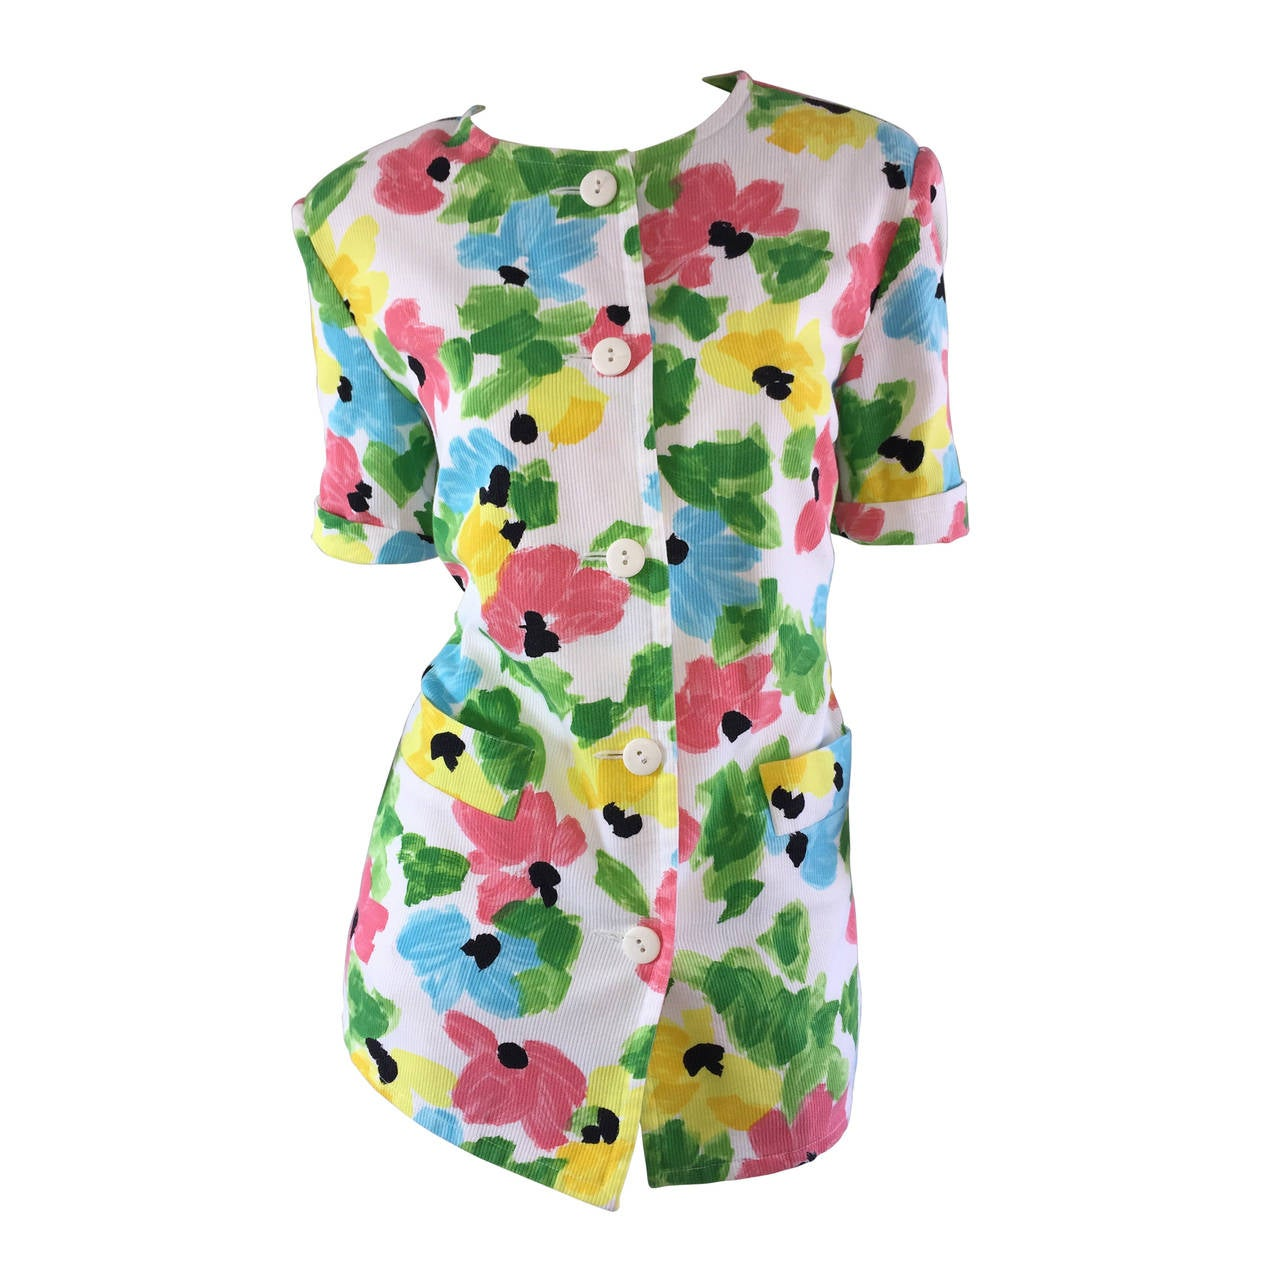 Vintage Courreges Floral Watercolor Short Sleeve Cotton Jacket For Sale